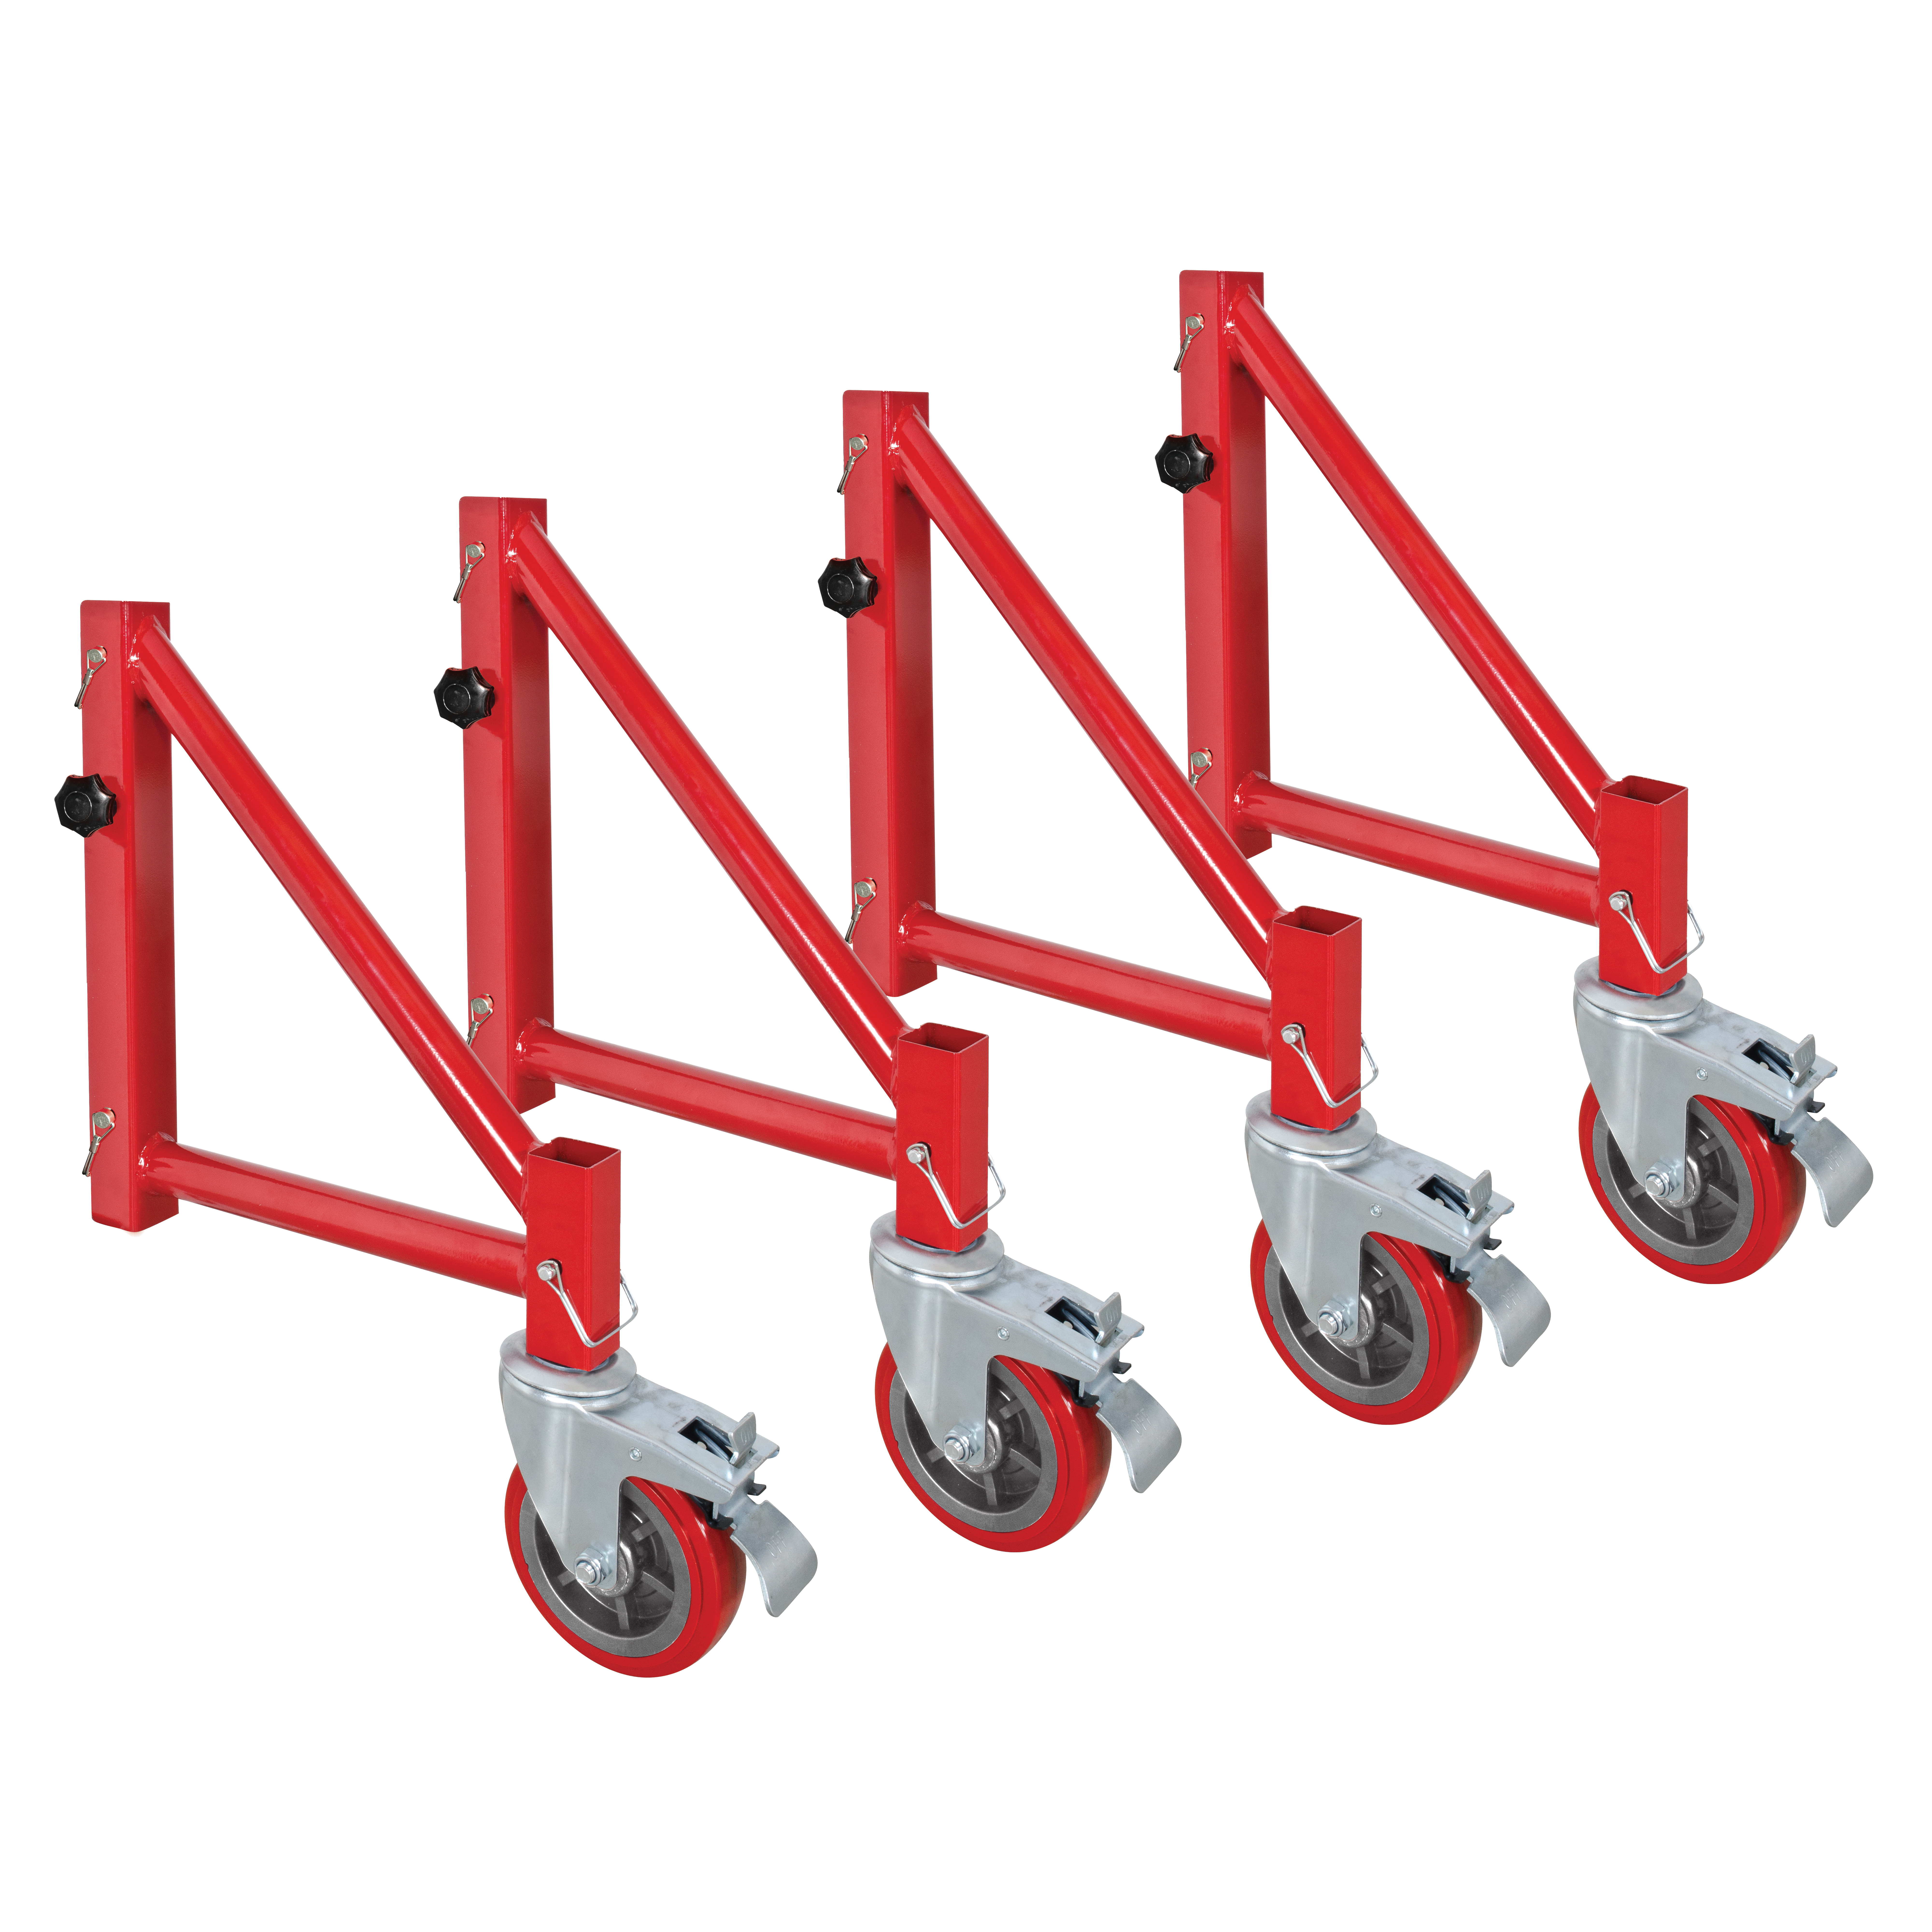 Picture of METALTECH I-BMSO4 Outrigger Set, Plastic/Steel, Red Enamel